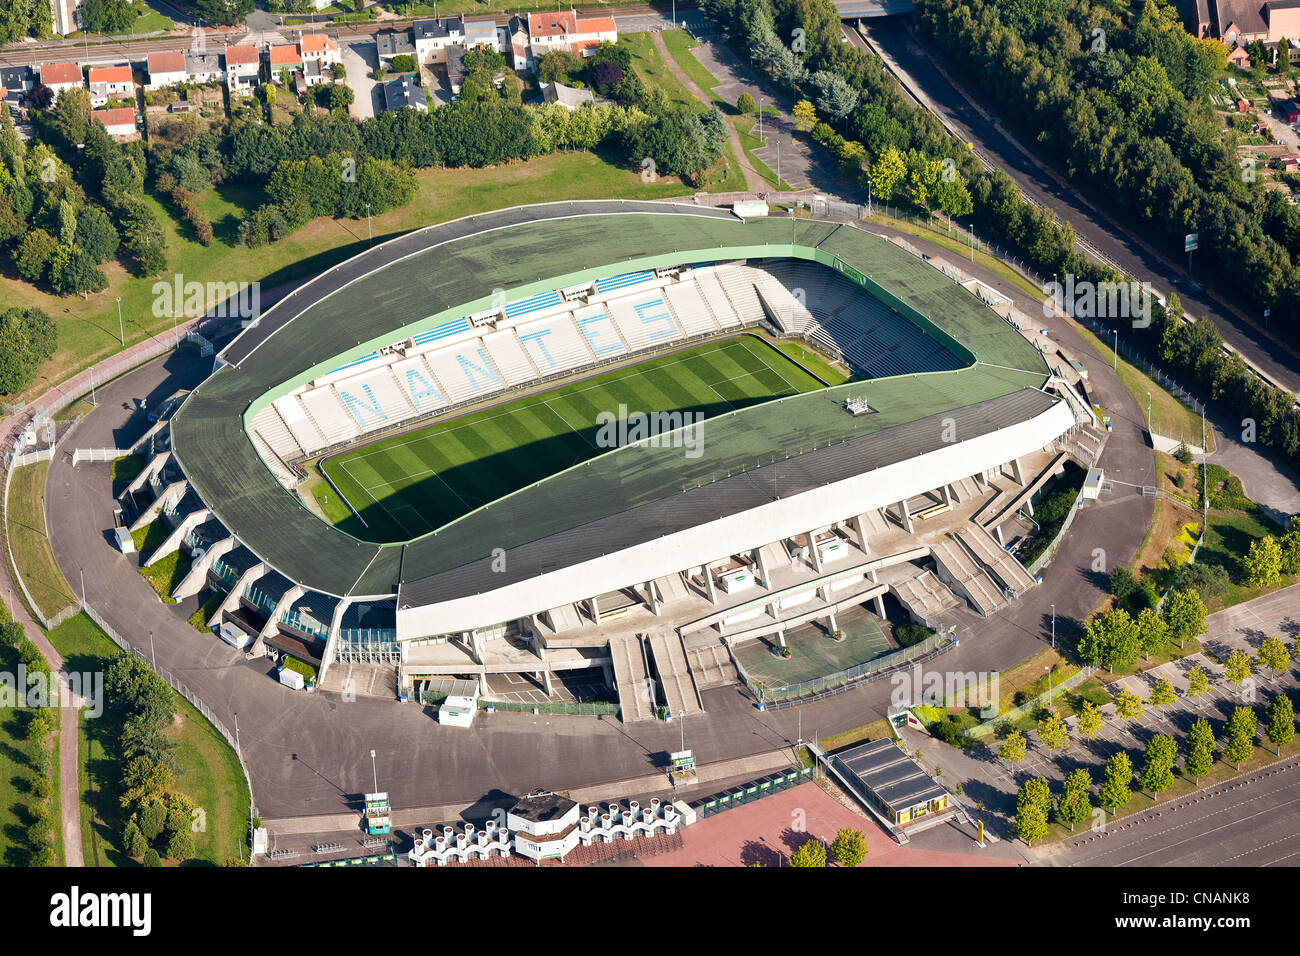 france loire atlantique nantes la beaujoire stadium aerial stock photo royalty free image. Black Bedroom Furniture Sets. Home Design Ideas